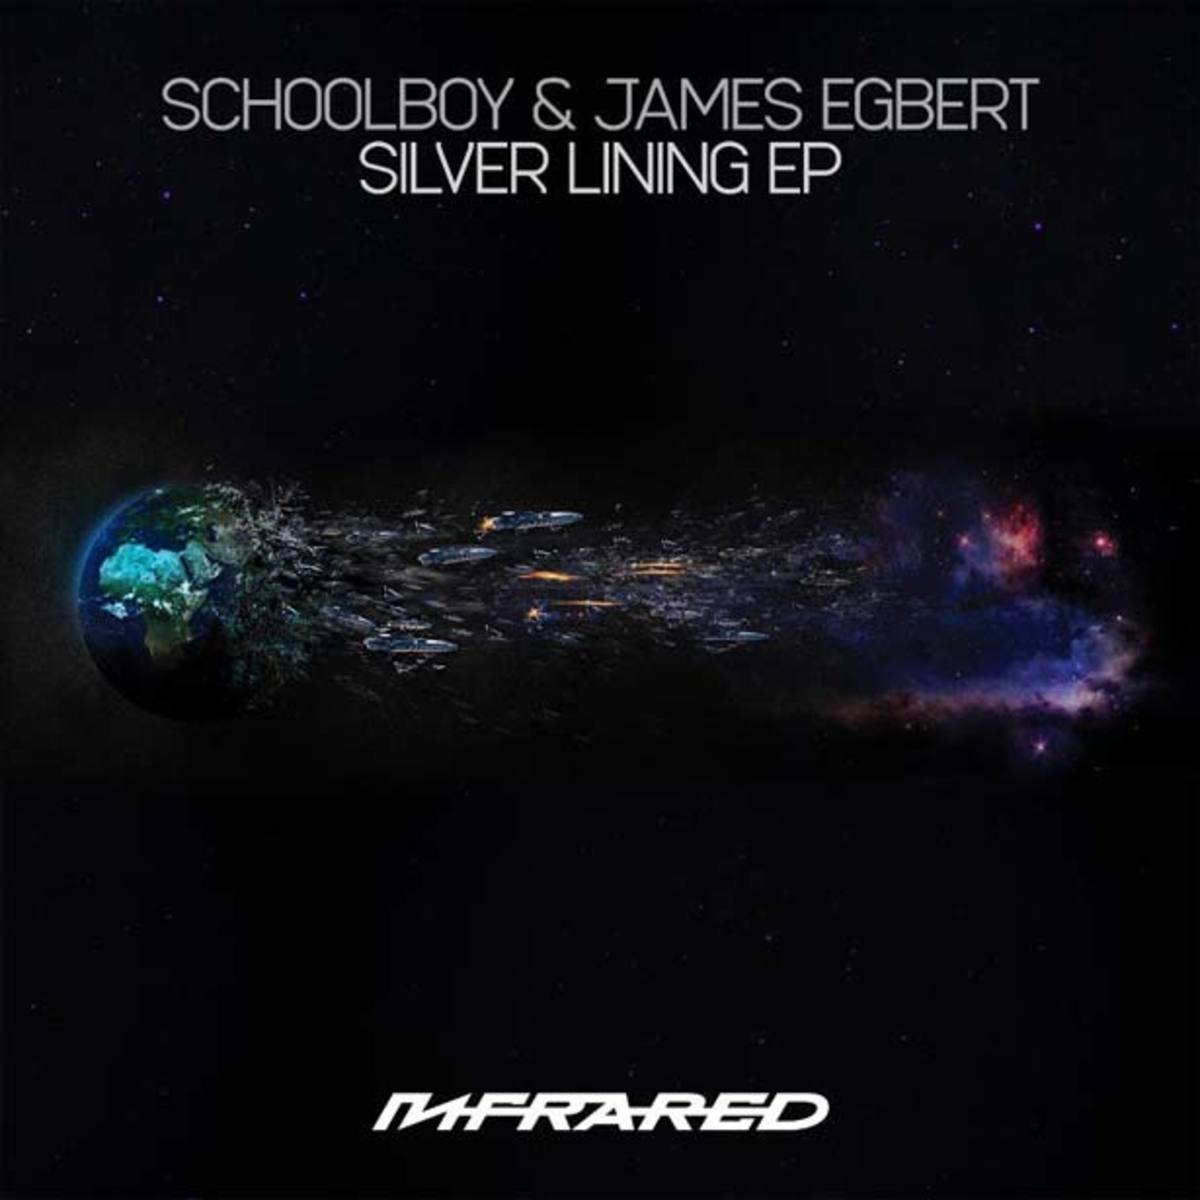 "Review: James Egbert & Schoolboy ""Silver Lining"" InfraRed"